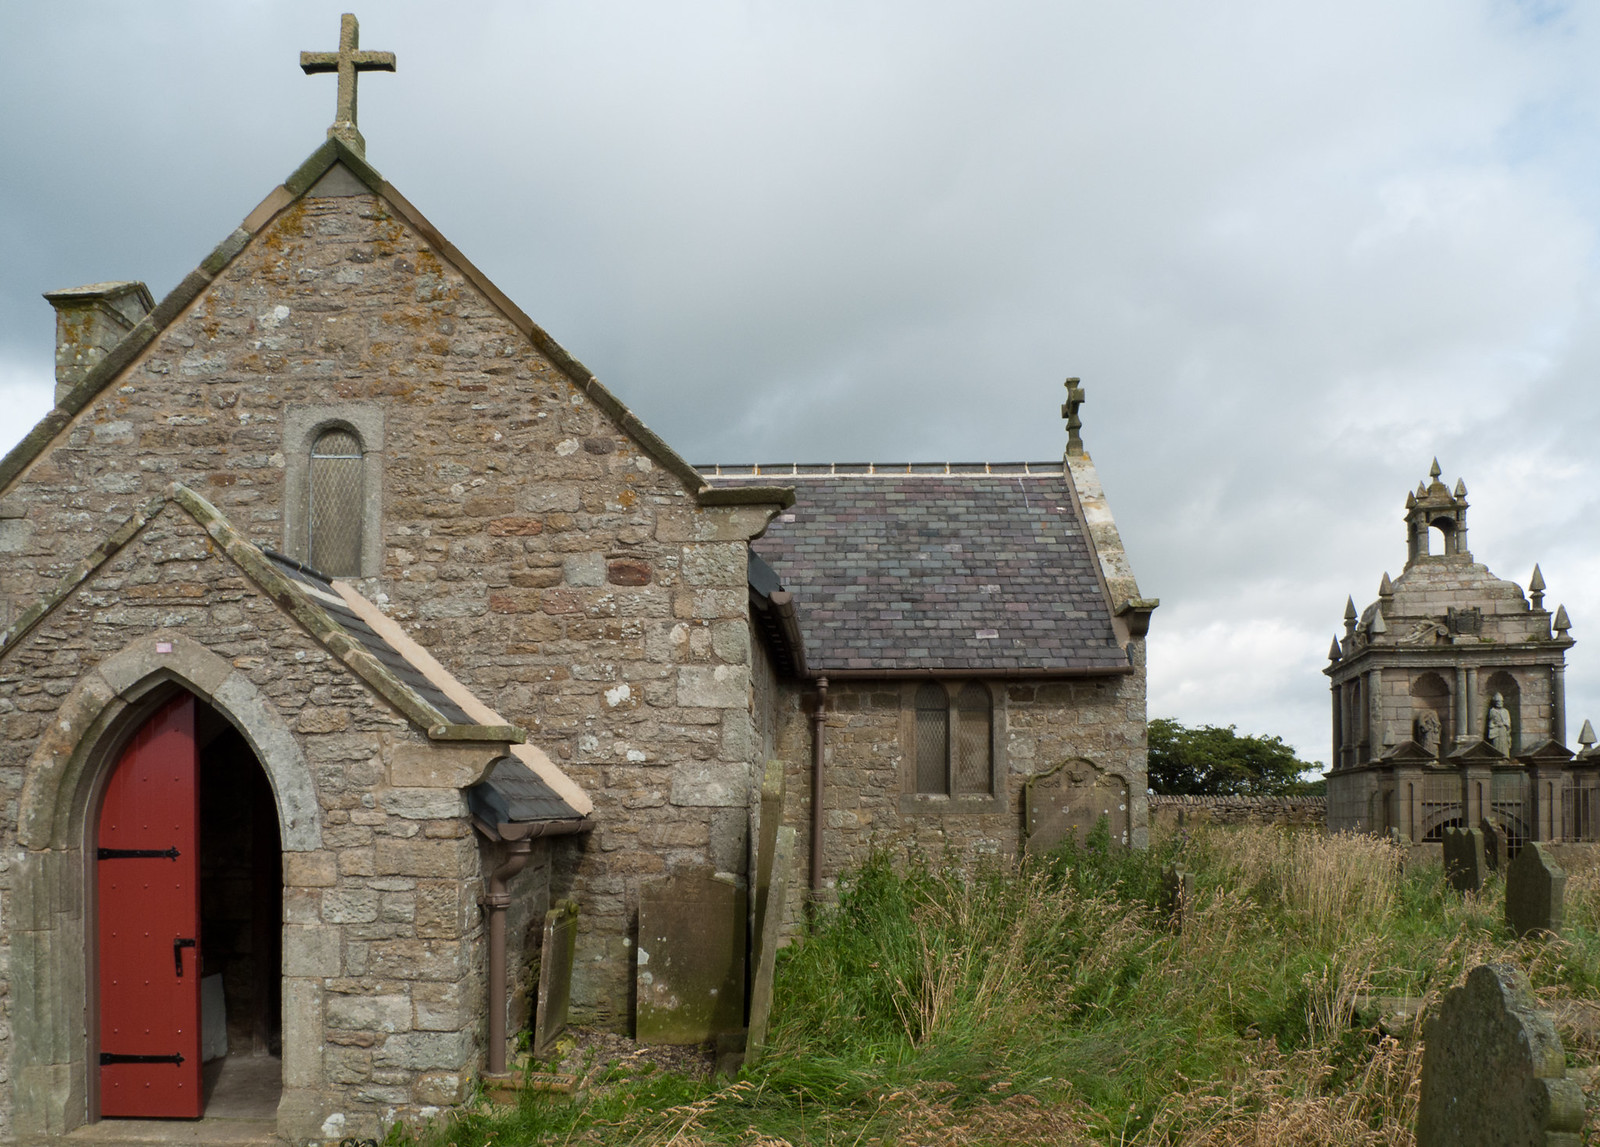 St. Andrew's Church, Shotley, Northumberland